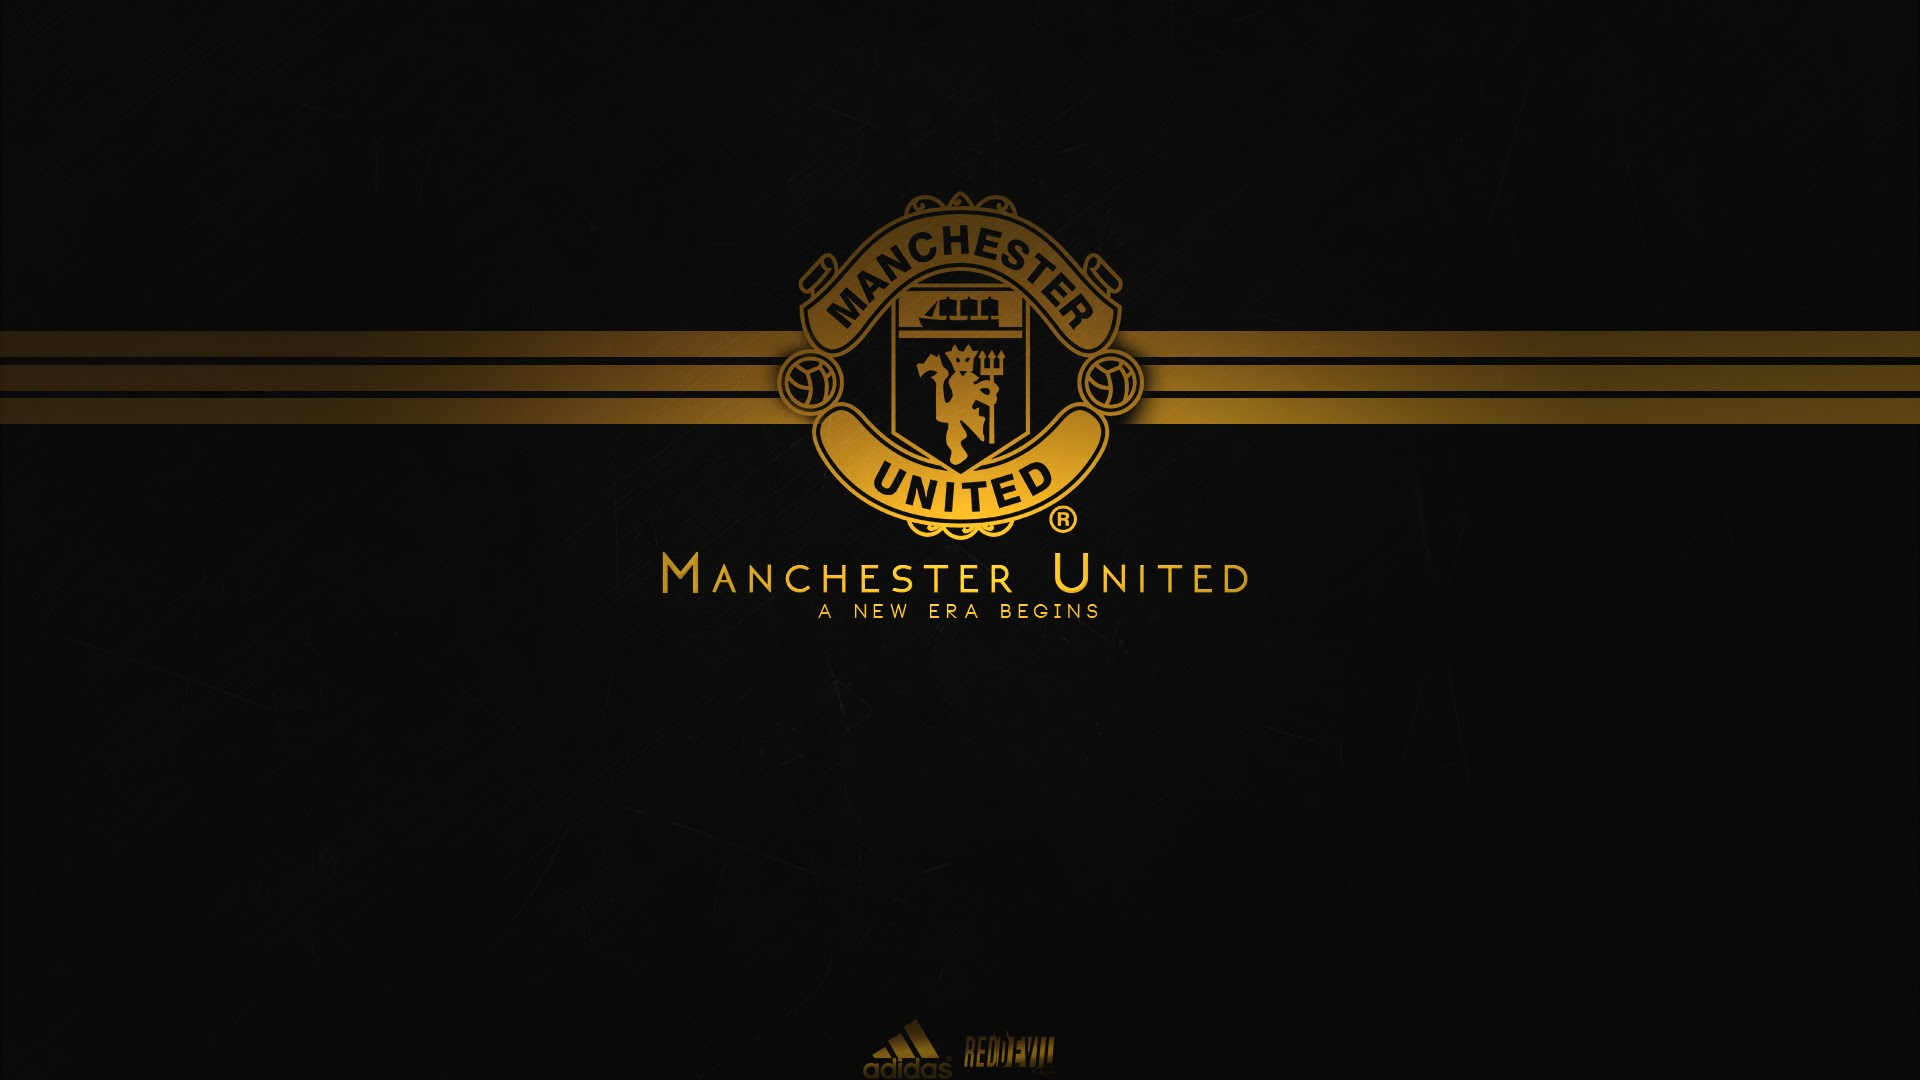 Hd wallpaper manchester united - Hd Wallpaper Manchester United 50